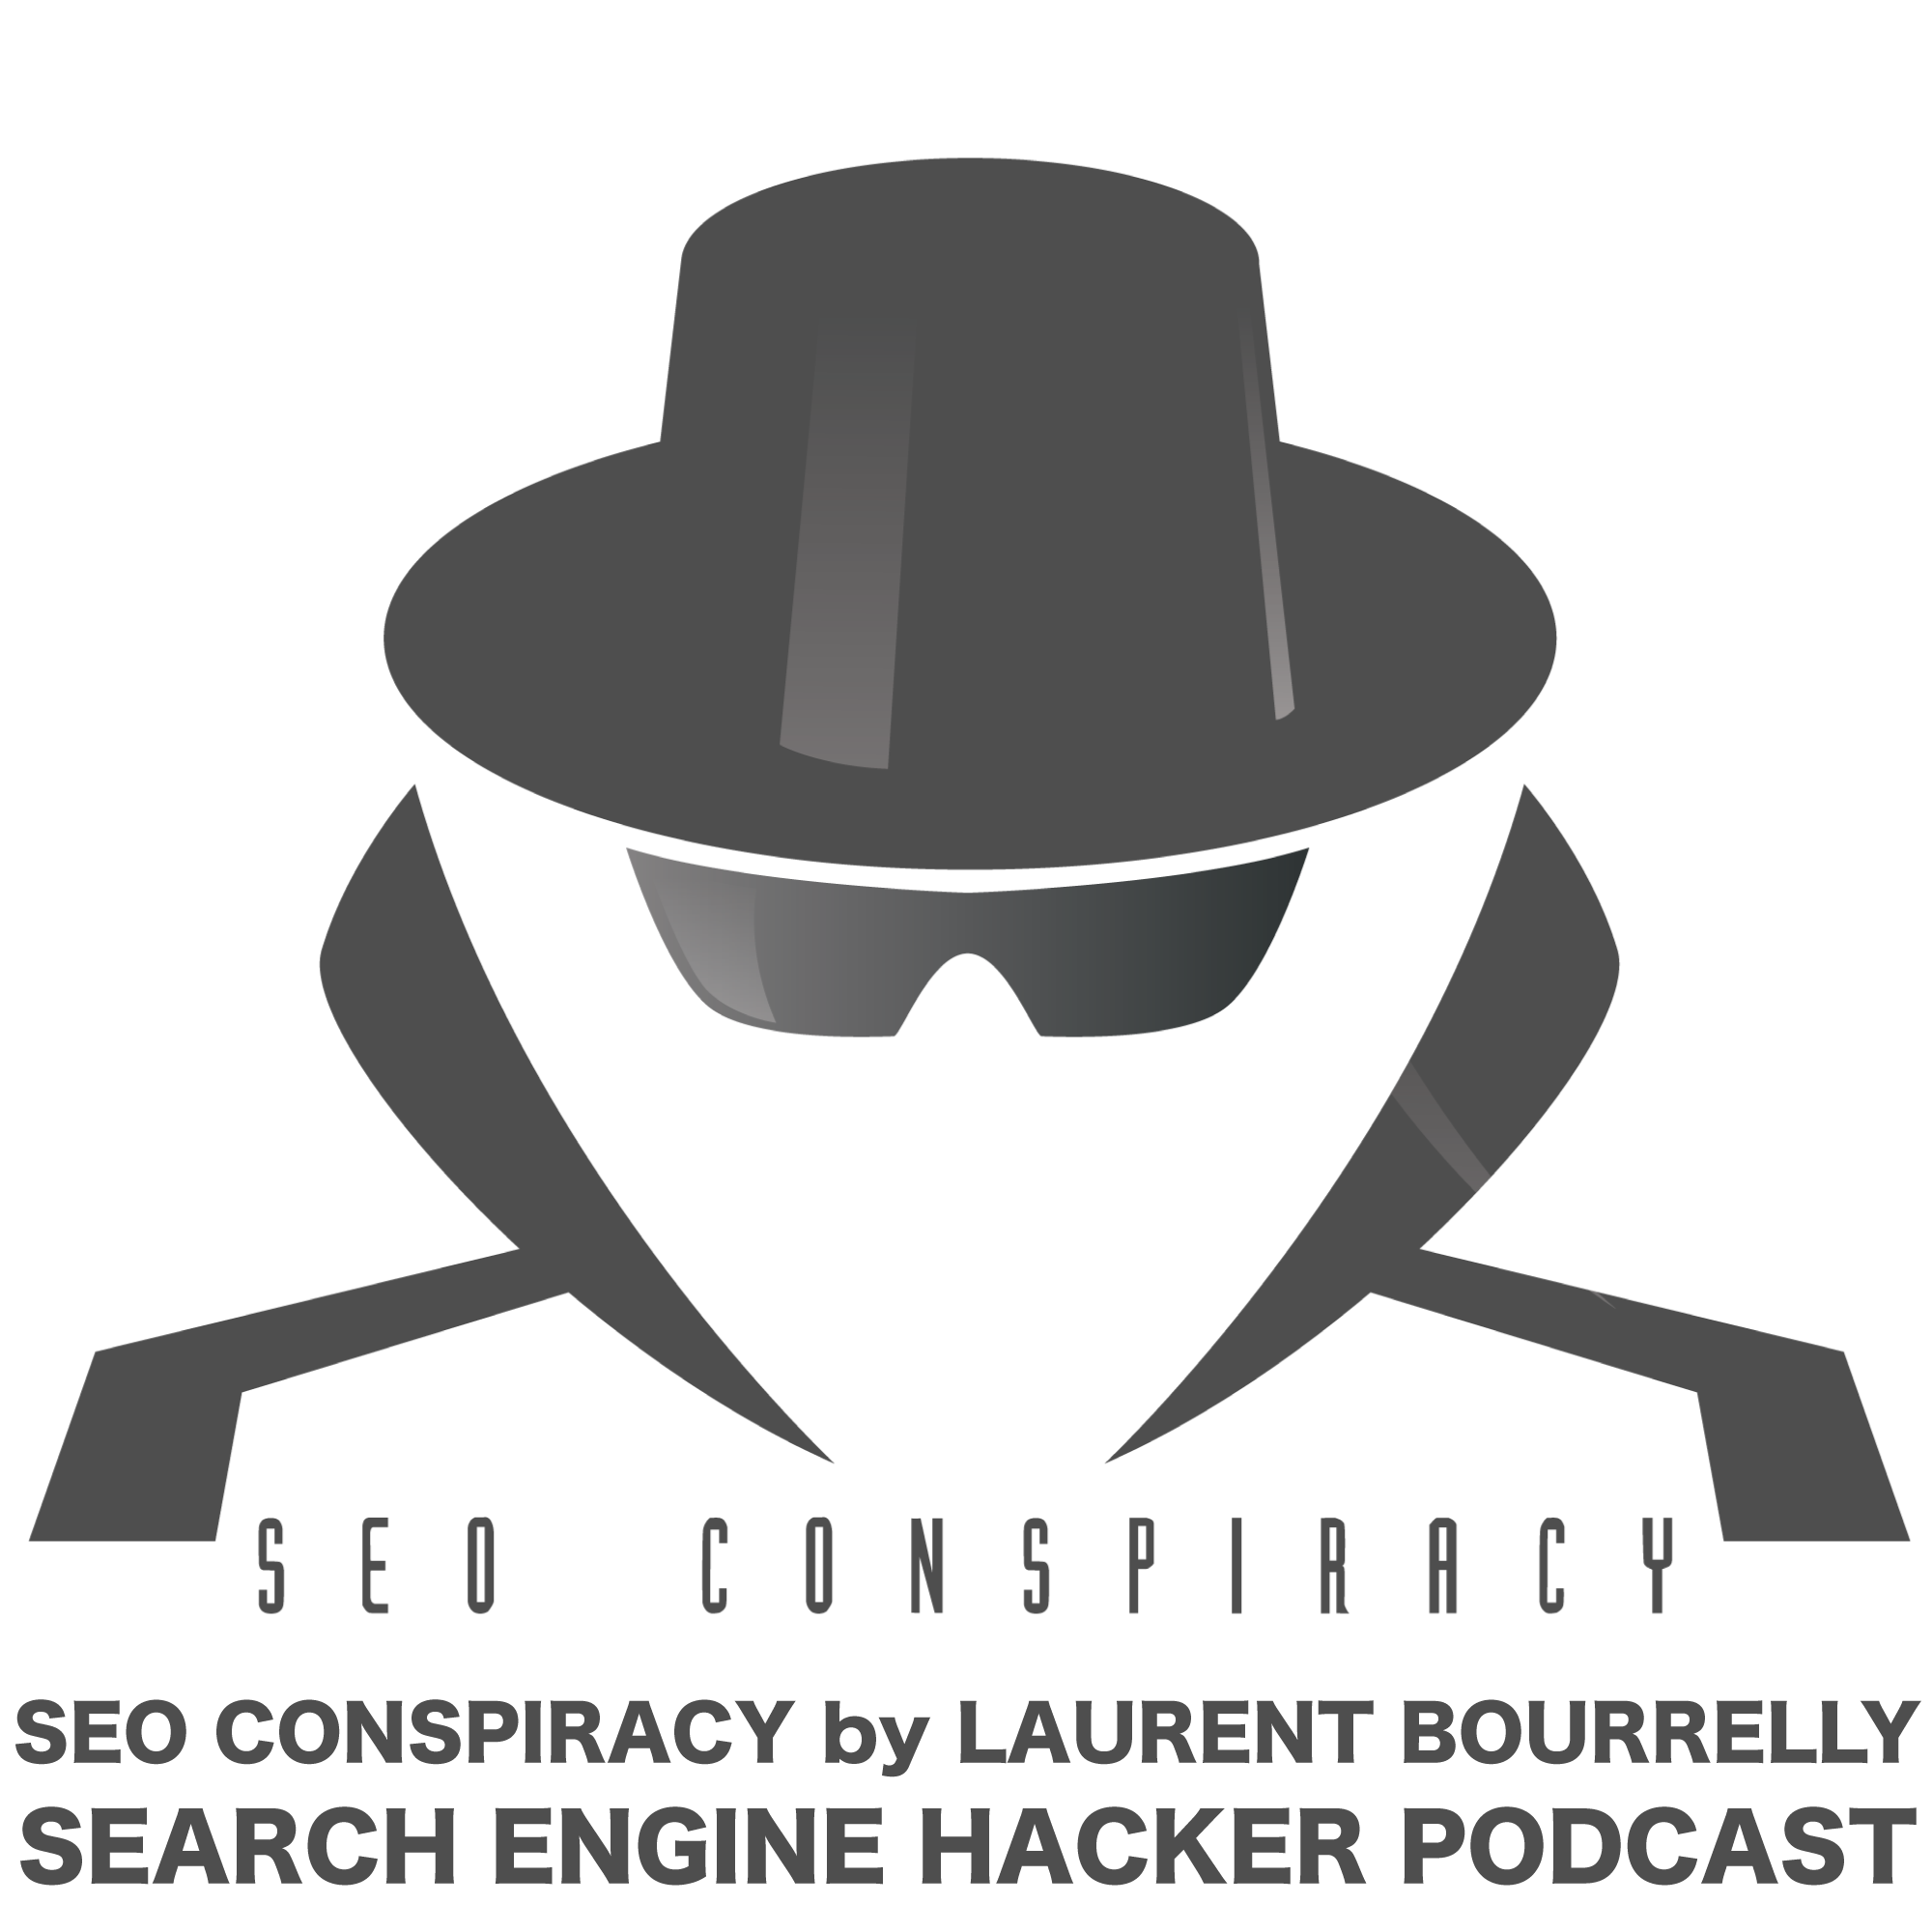 Can I buy backlinks for Google SEO without risking a penalty?